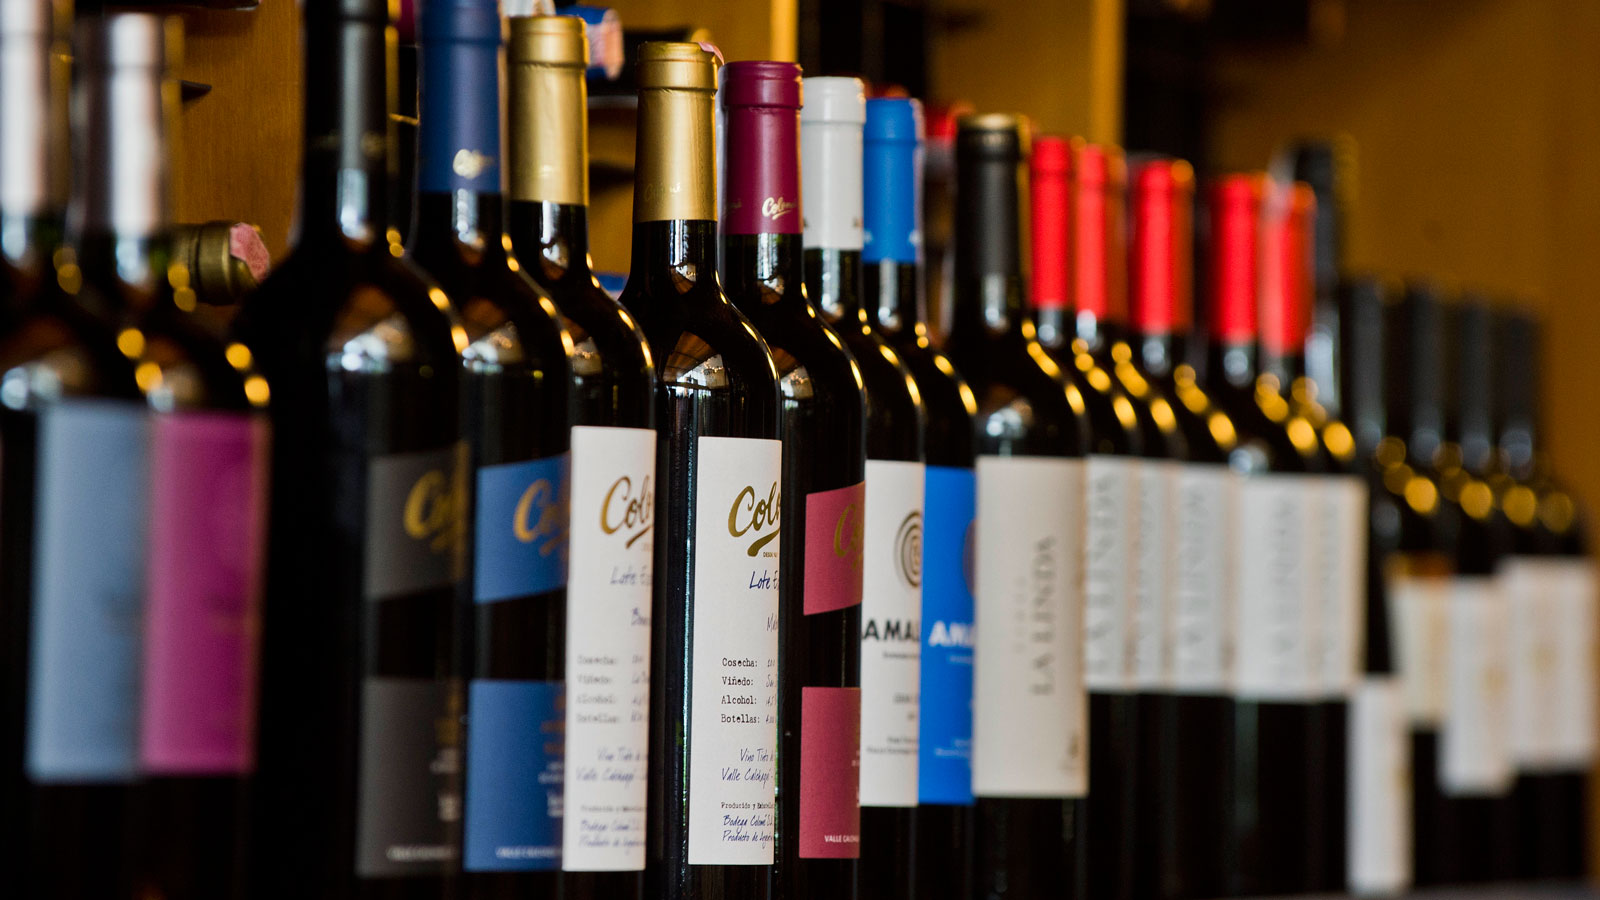 brazil-wines-store-FT-BLOG0717.jpg